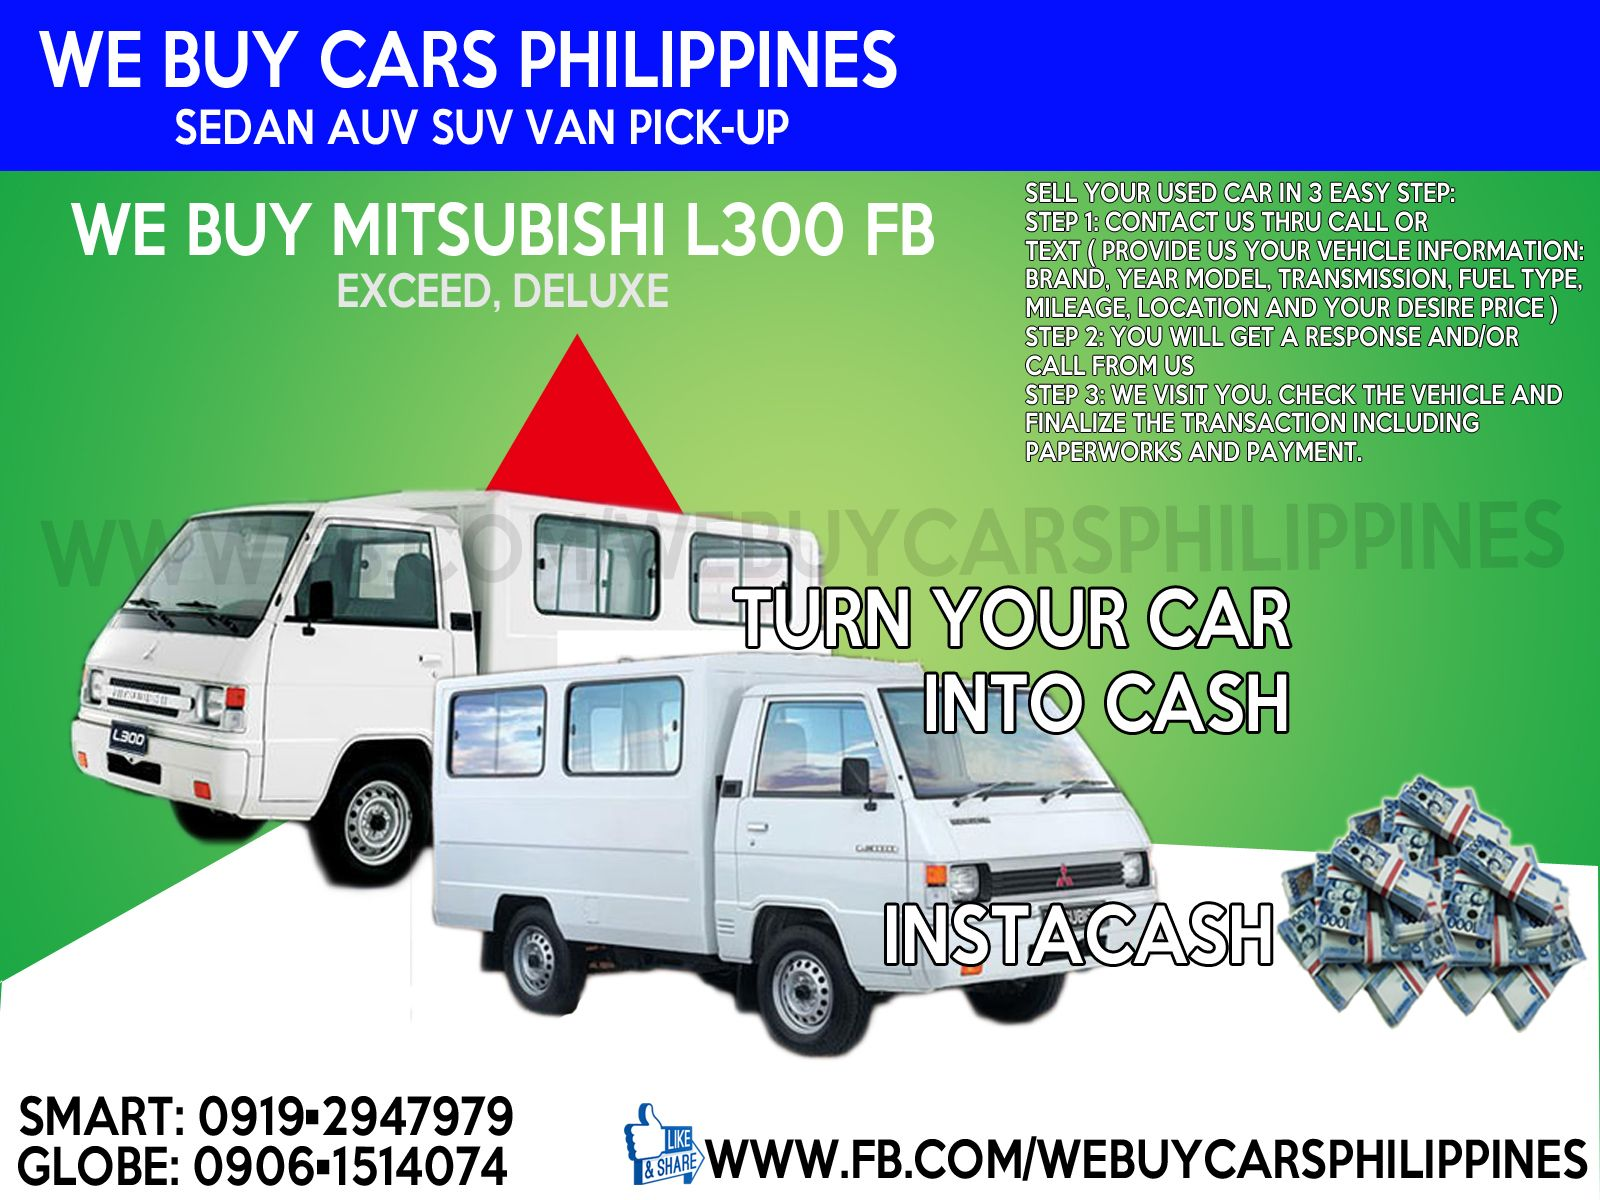 We Buy Used Mitsubishi L300 Philippines L300 Cc W Dealer Option